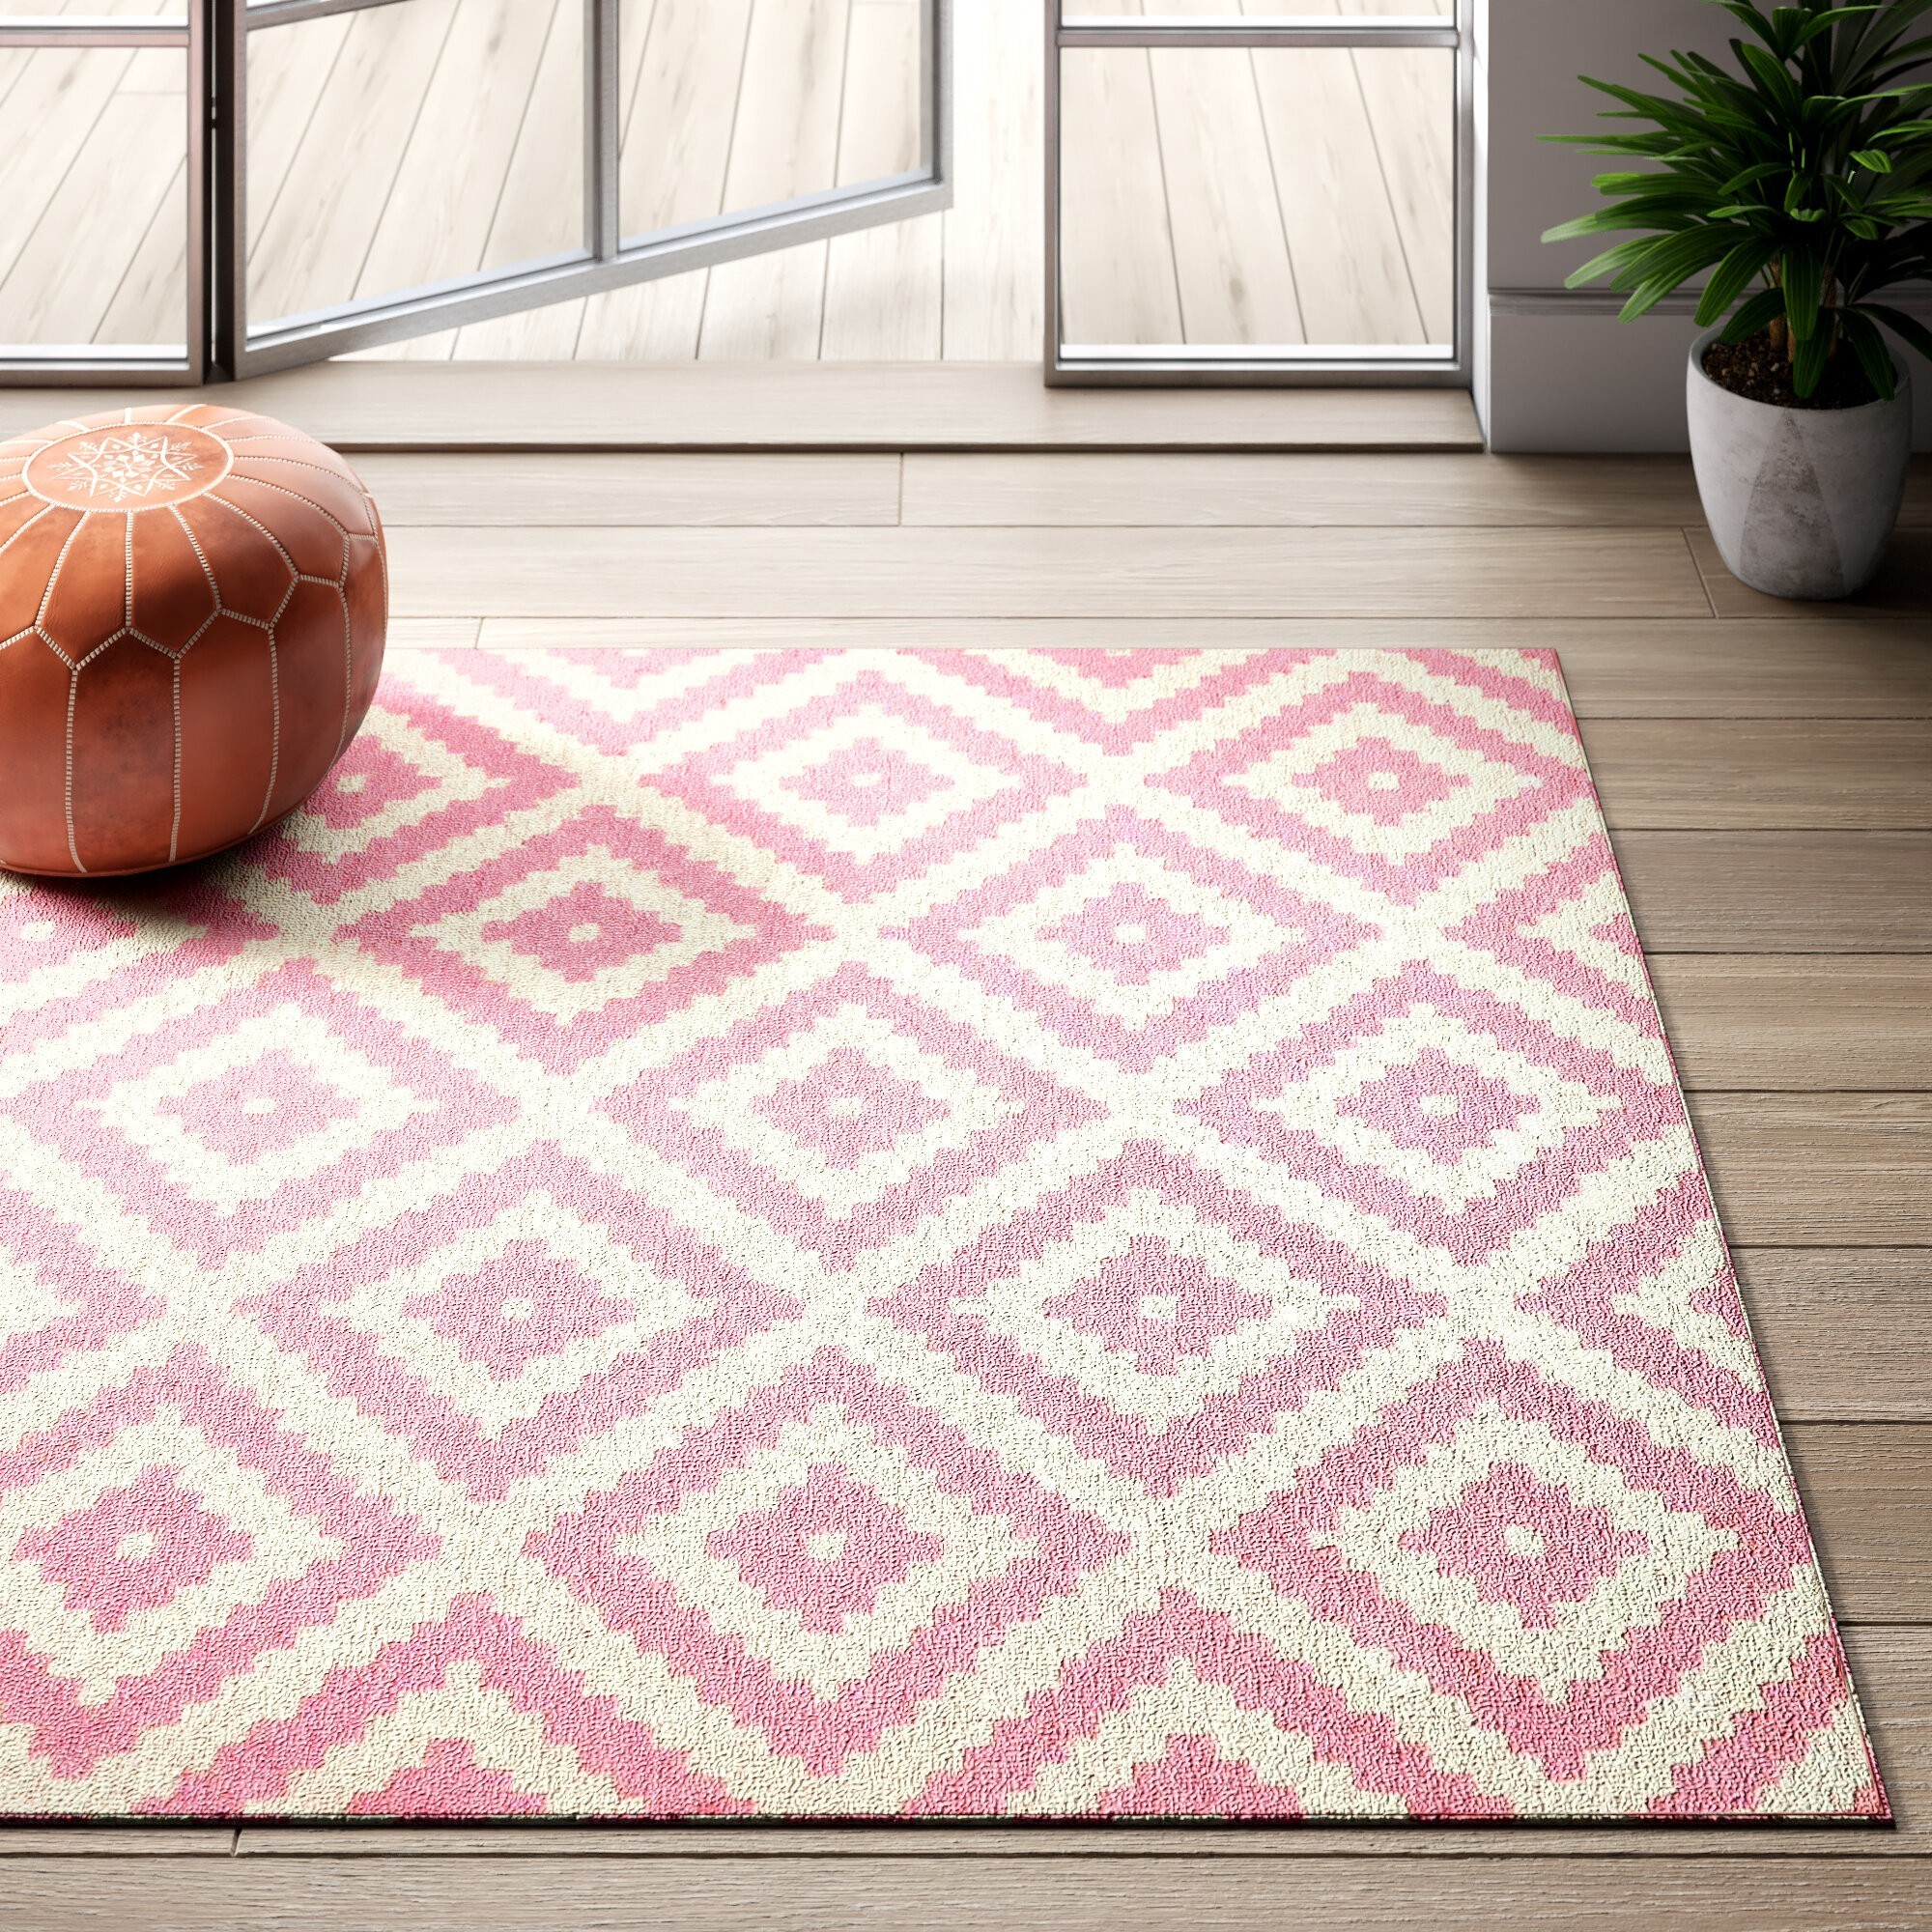 How To Choose A Kids Rug